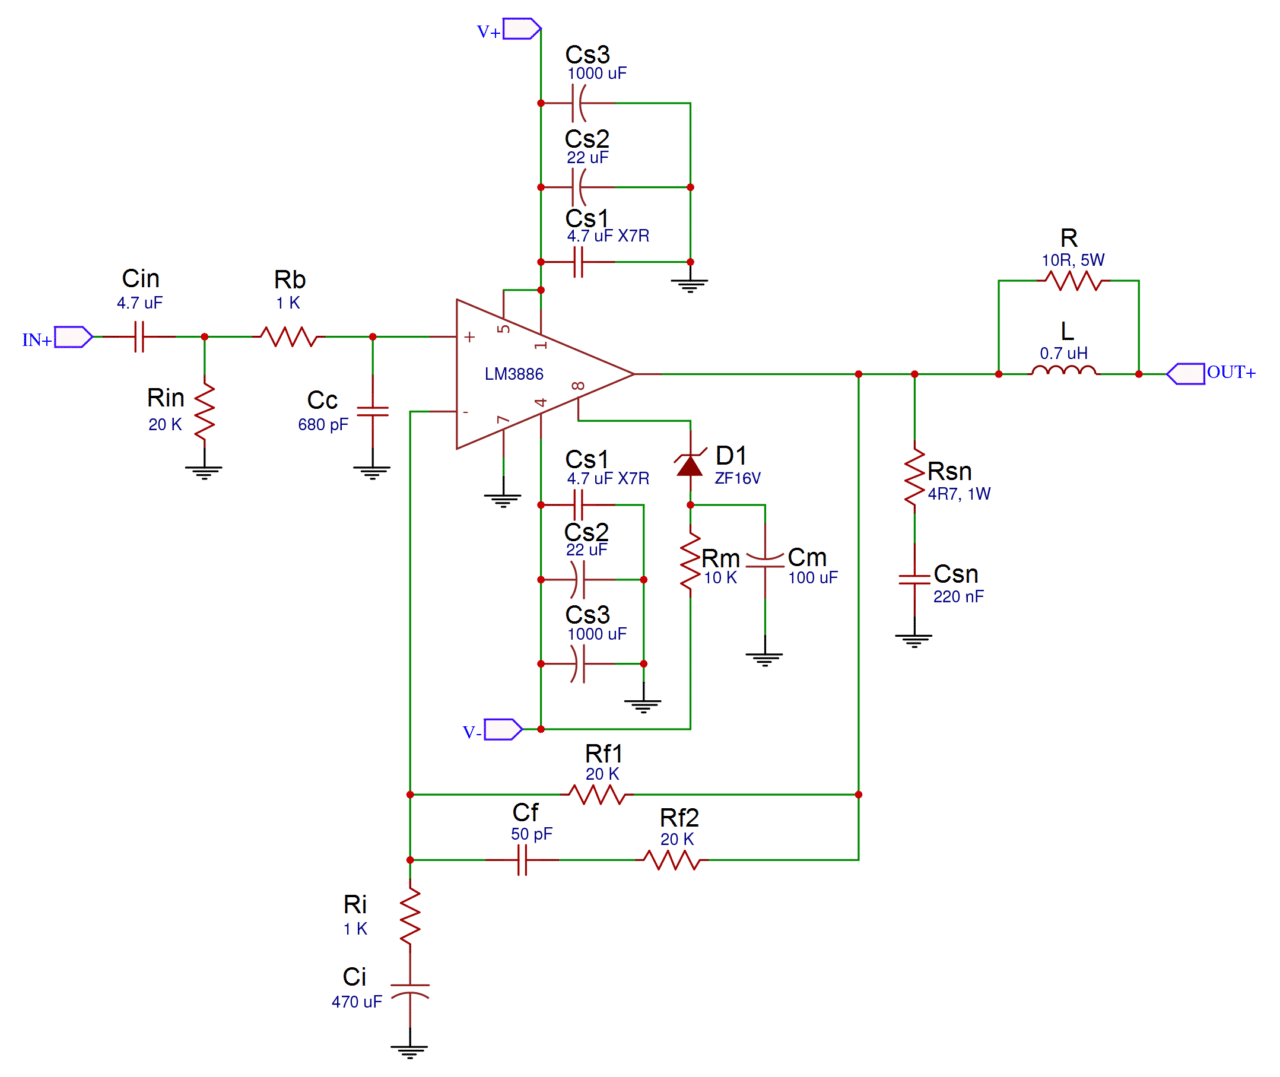 A Complete Guide To Design And Build Hi Fi Lm3886 Amplifier Non Inverting Circuit Diagram Ill Be Using The Schematic Below Its Basically Same As One In Datasheet But With Optional Stability Components Included